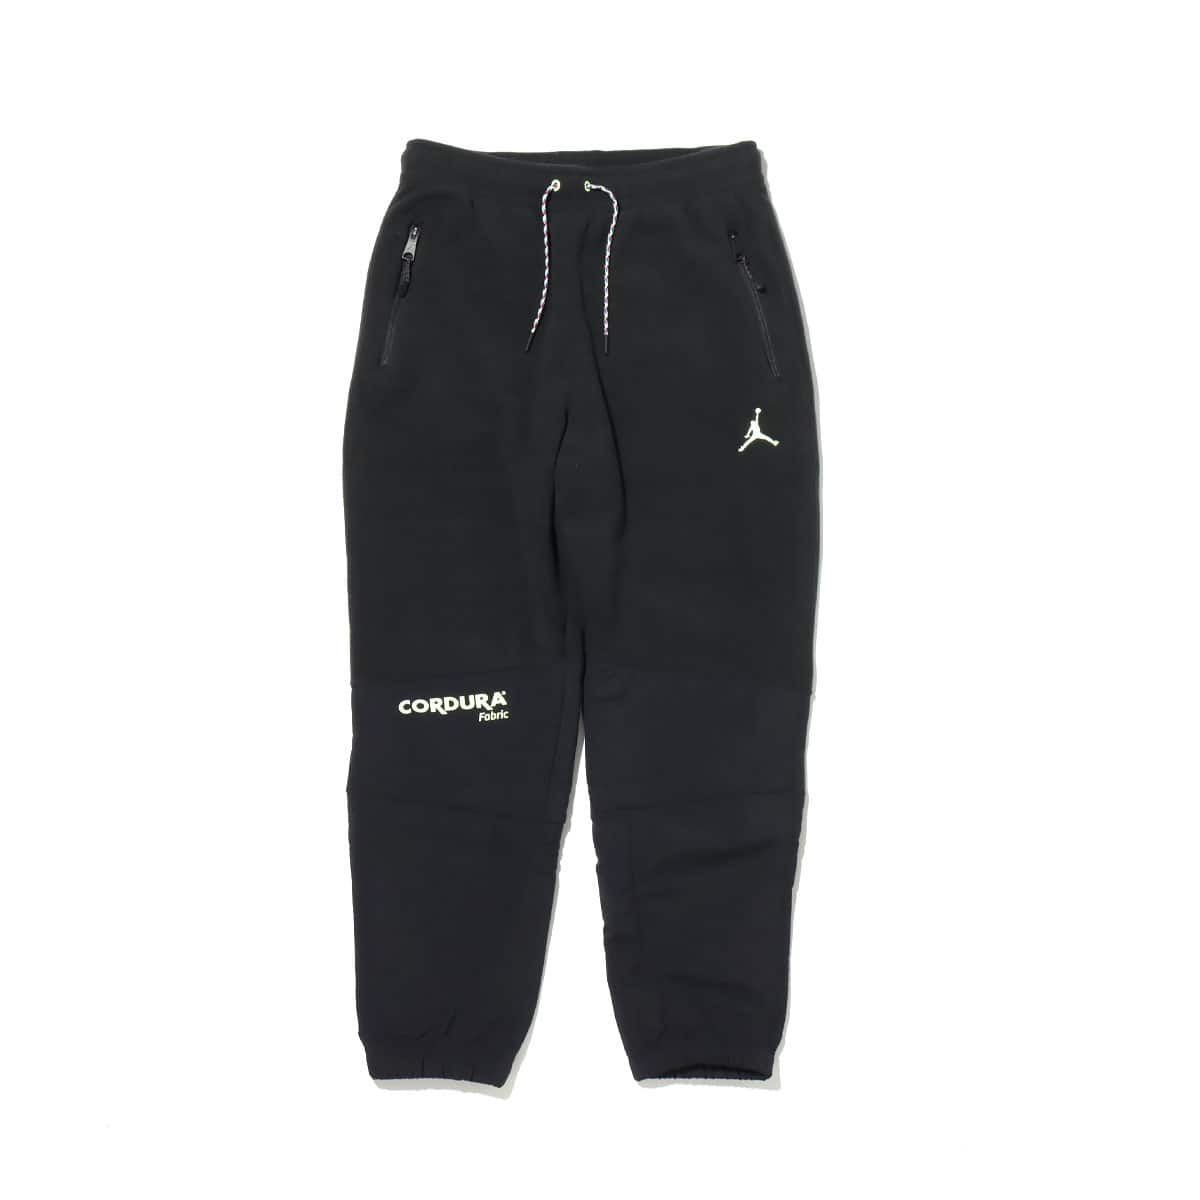 JORDAN BRAND AS M J MOUNTAINSIDE PANT BLACK/COURT PURPLE/BARELY VOLT 20HO-I_photo_large